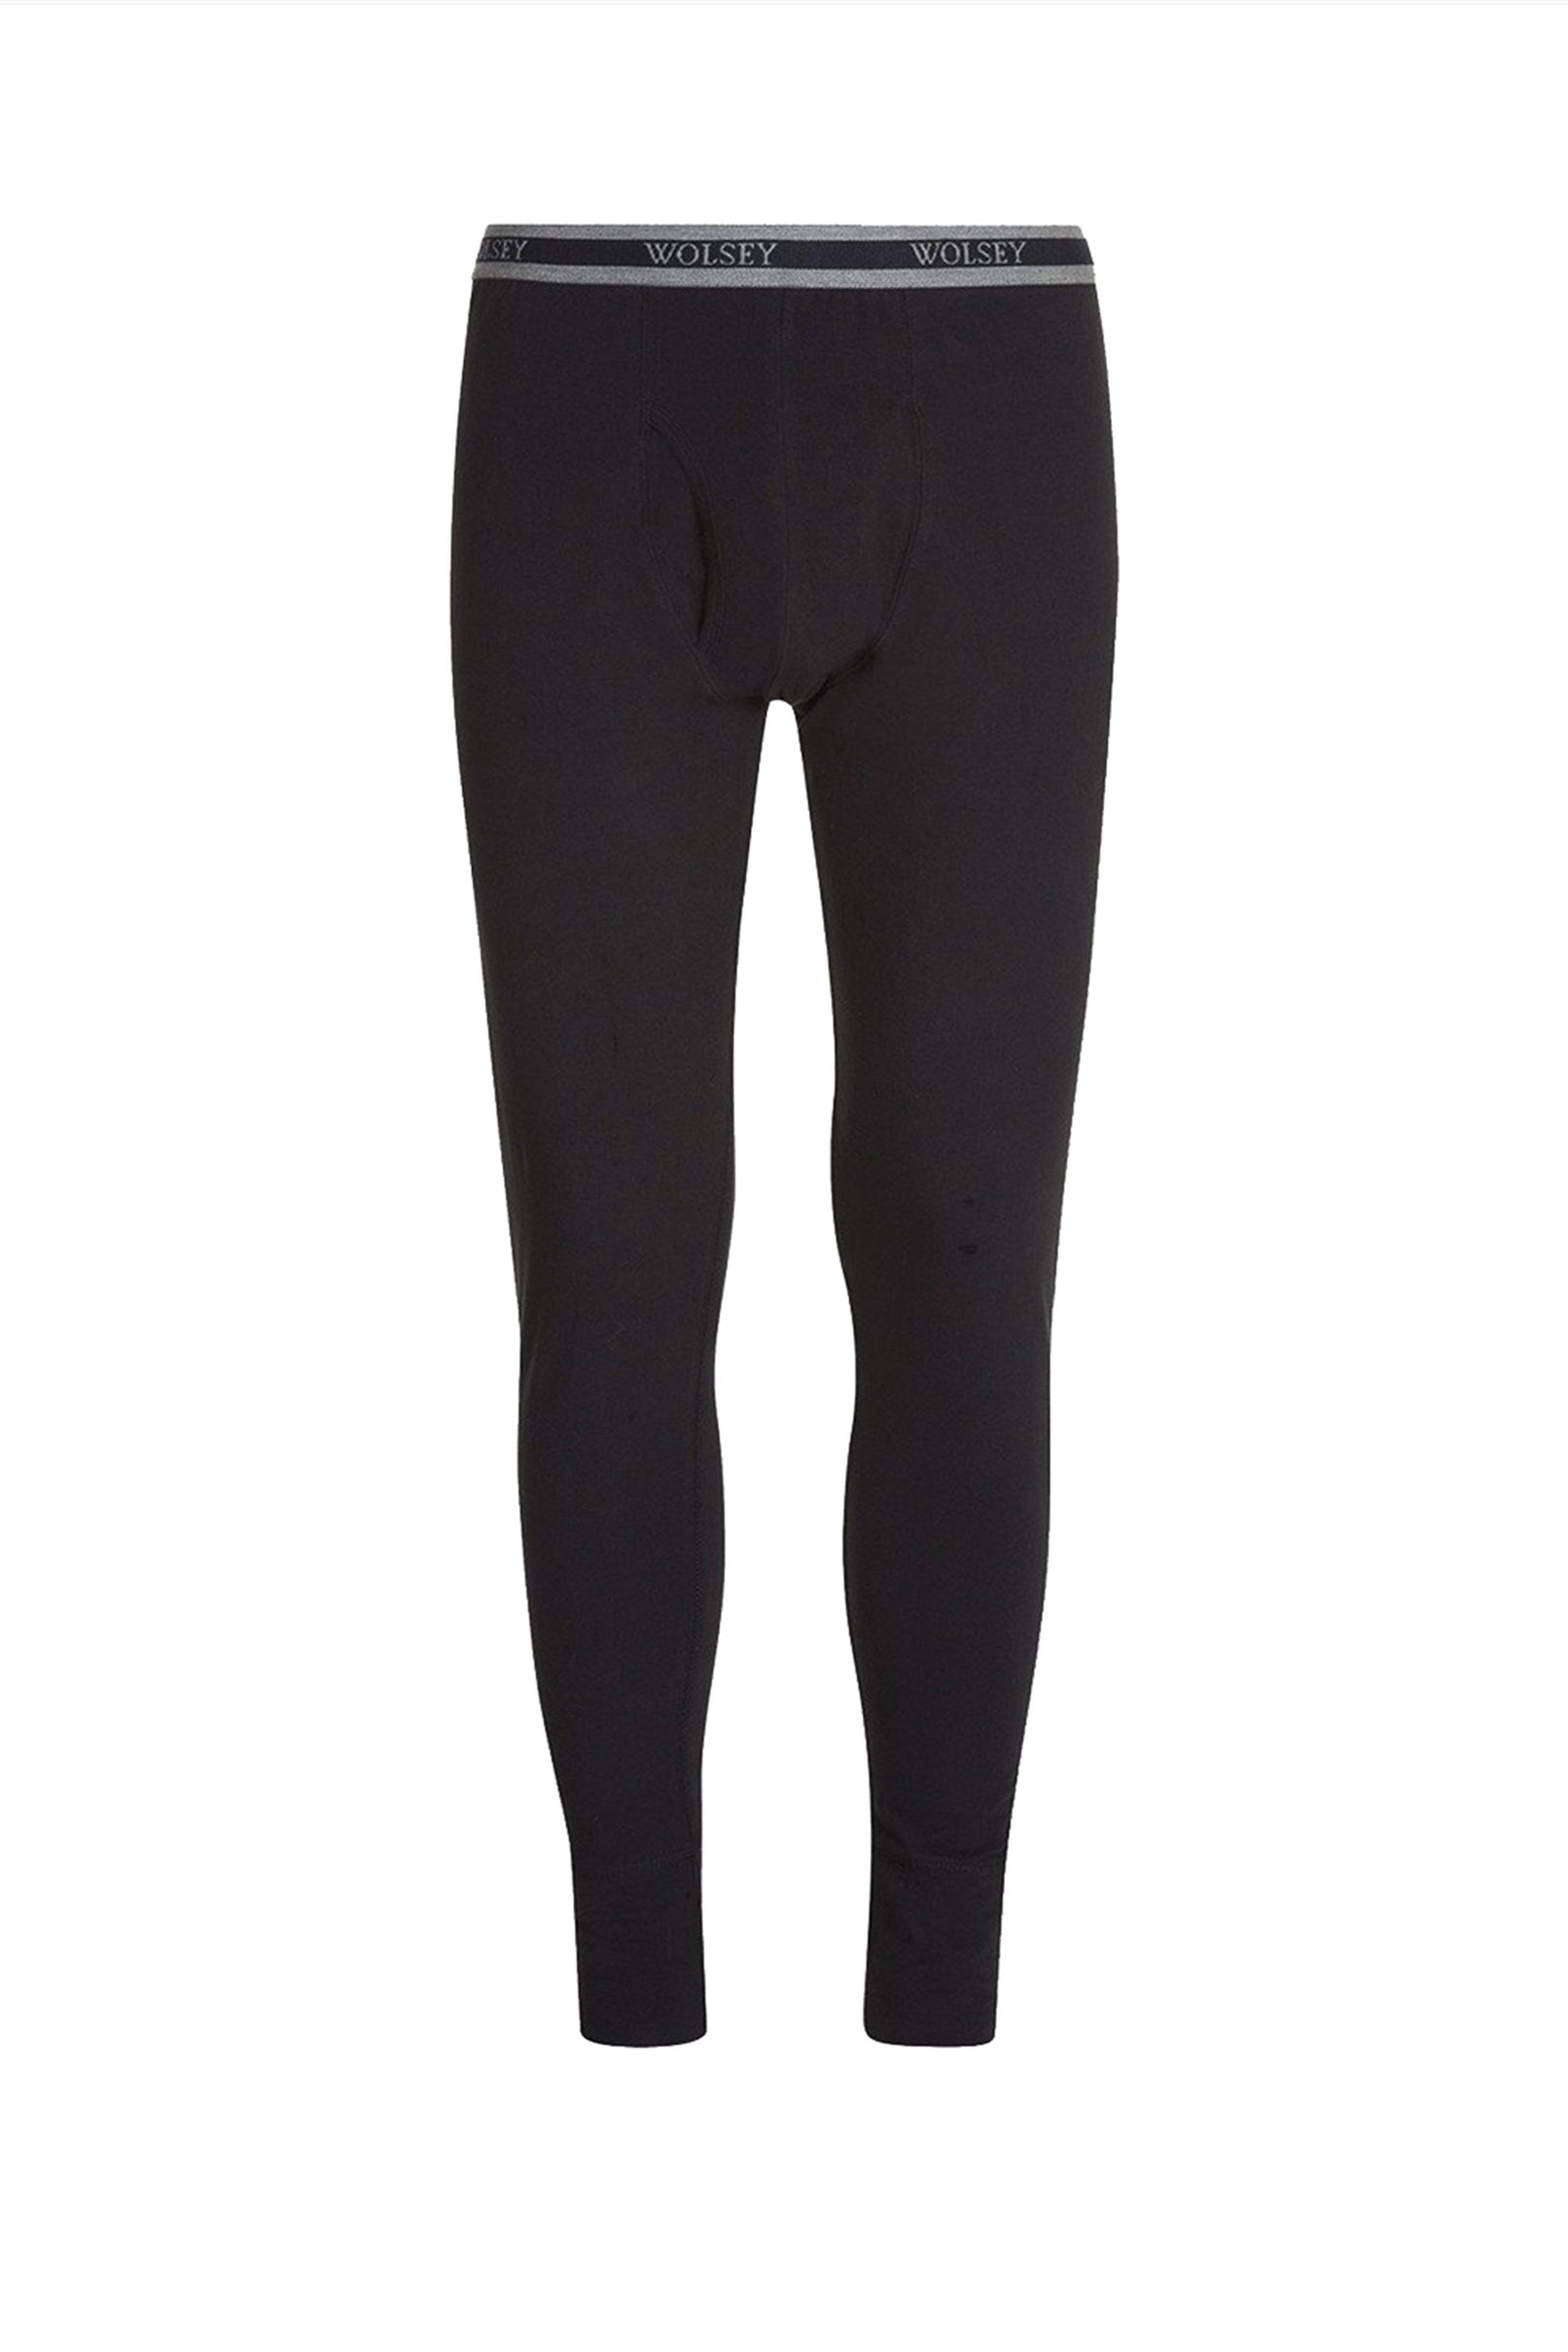 Black Classic Style Ribbed Long Johns With Keyhole Opening